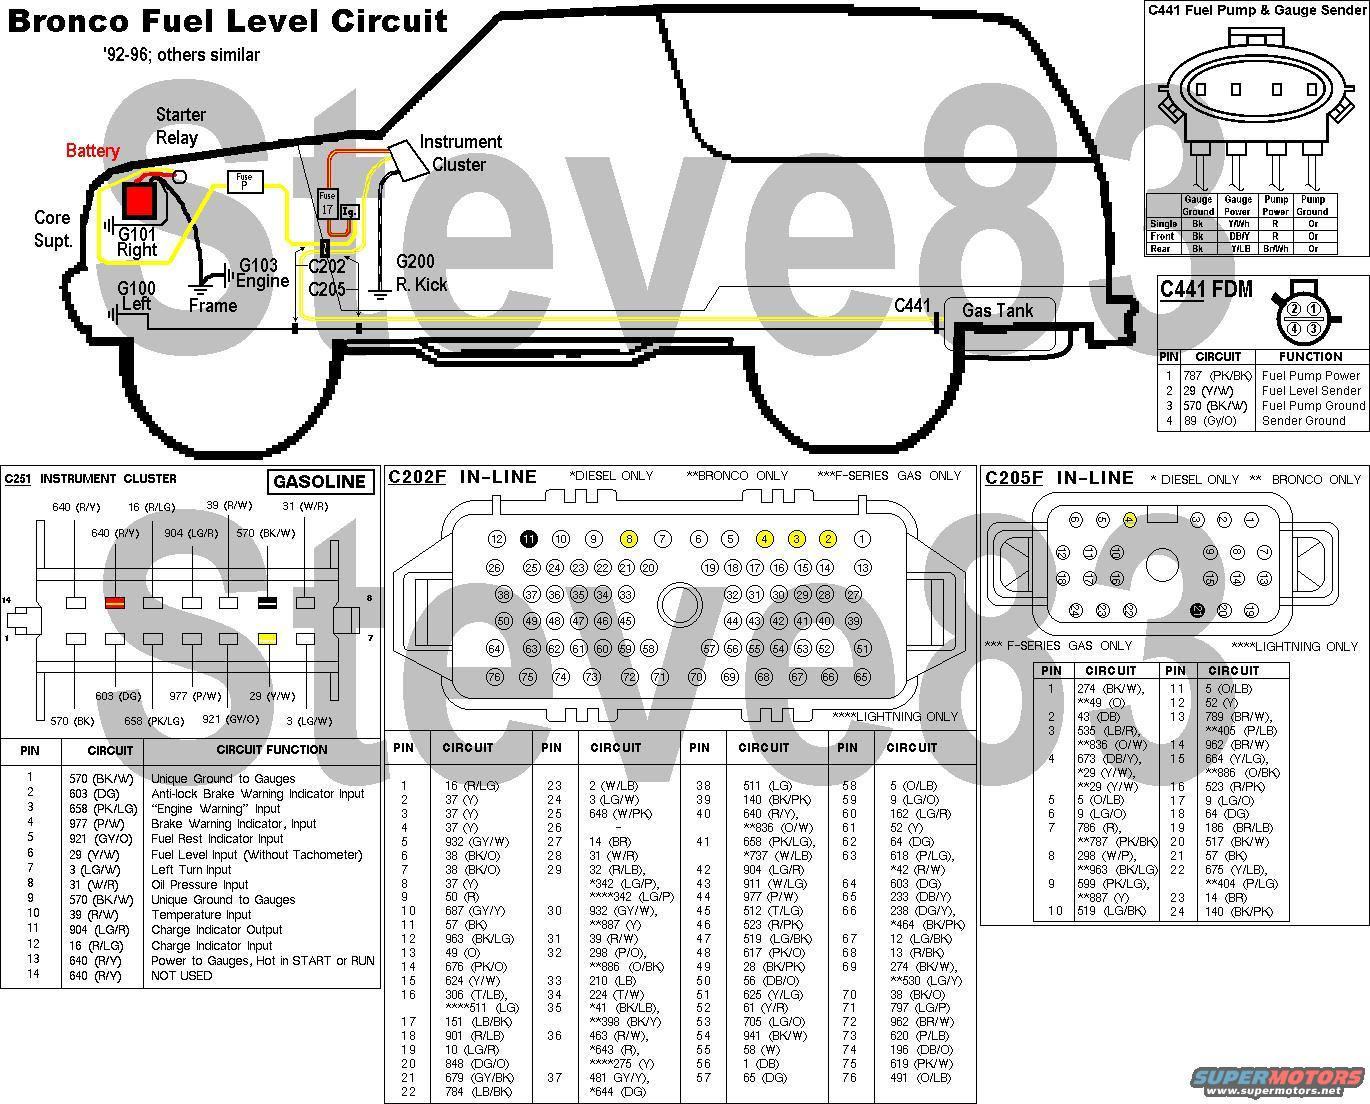 Ford Bronco Fuel Level Sender Repair Picture